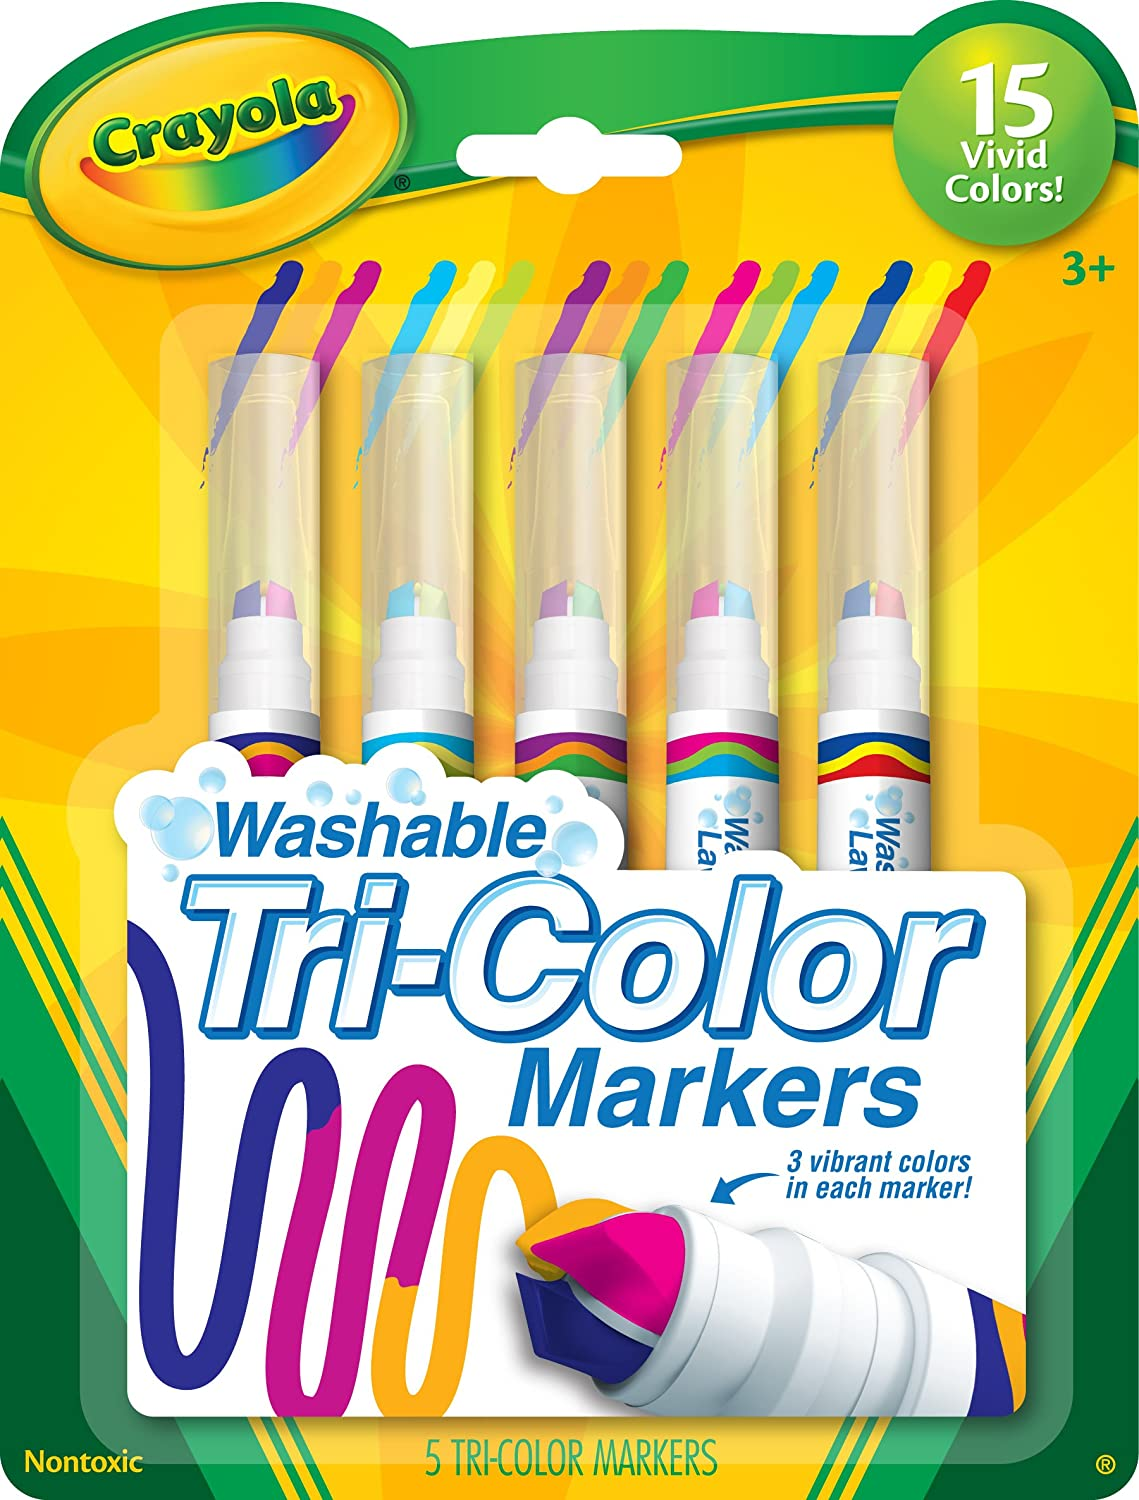 Crayola Triple Tip Markers, Washable Markers, 15 Vivid Colors, 5Count, Model Number: 58-8177: Toys & Games